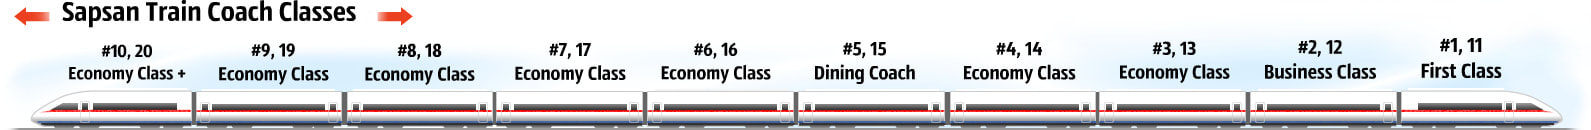 Sapsan Train Coach Scheme